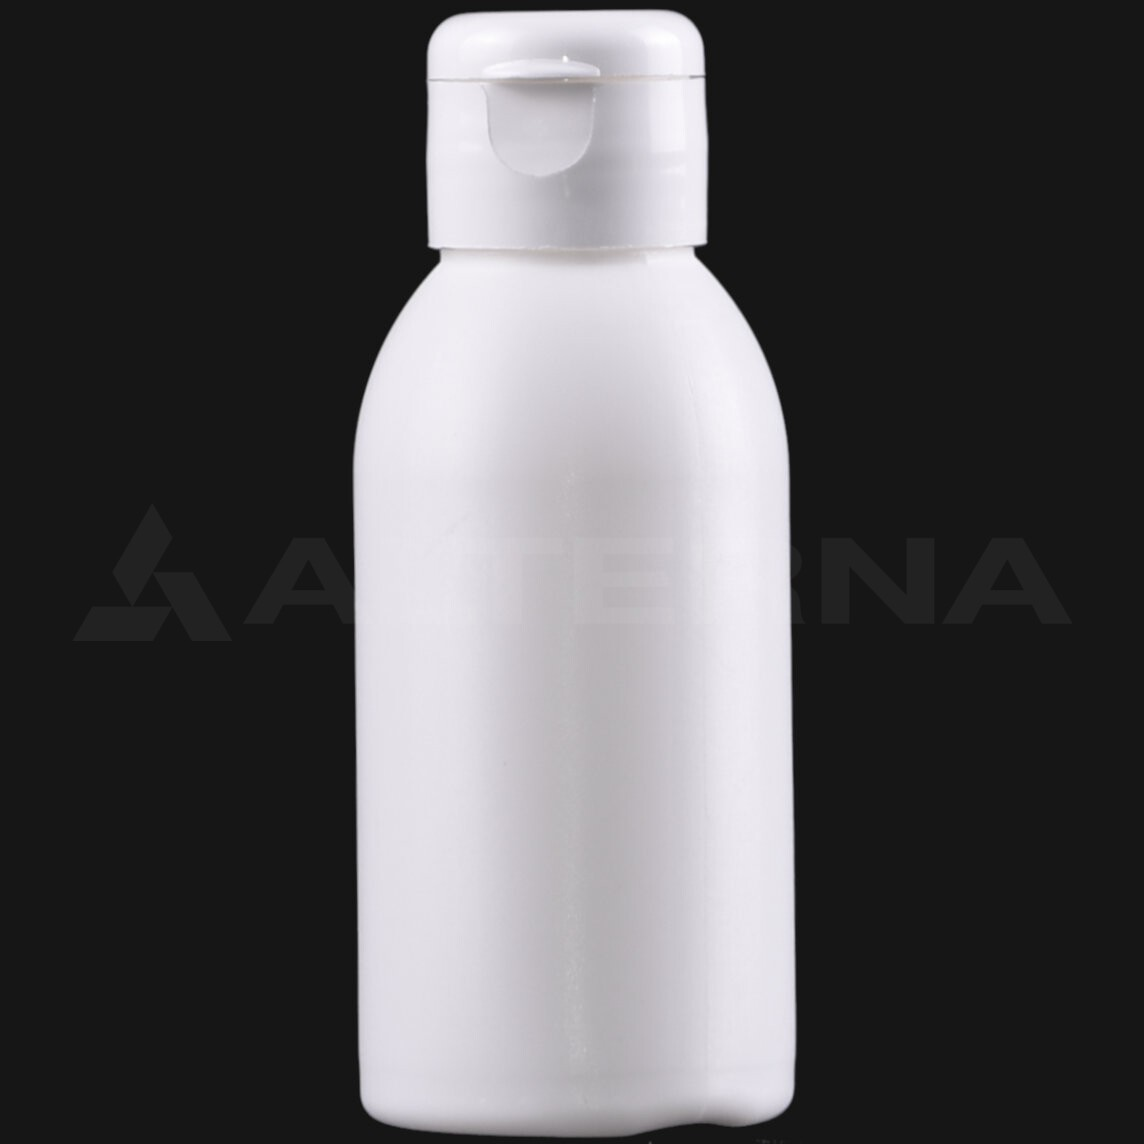 100 ml HDPE Bottle with 24 mm Flip Top Cap